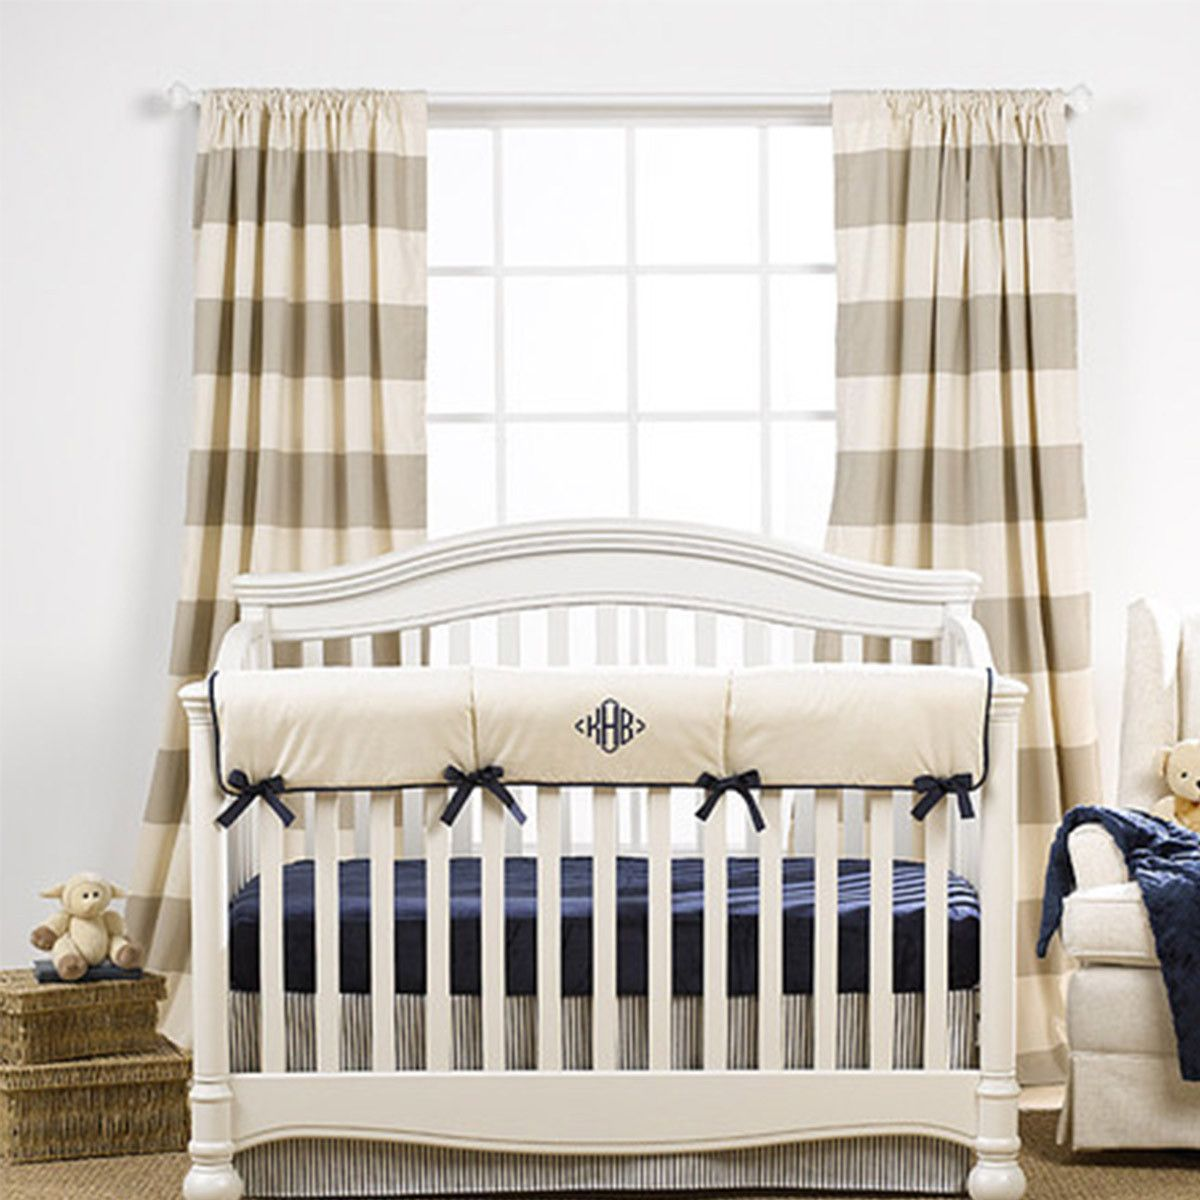 tan and white striped curtains nursery - Google Search   CDP ...